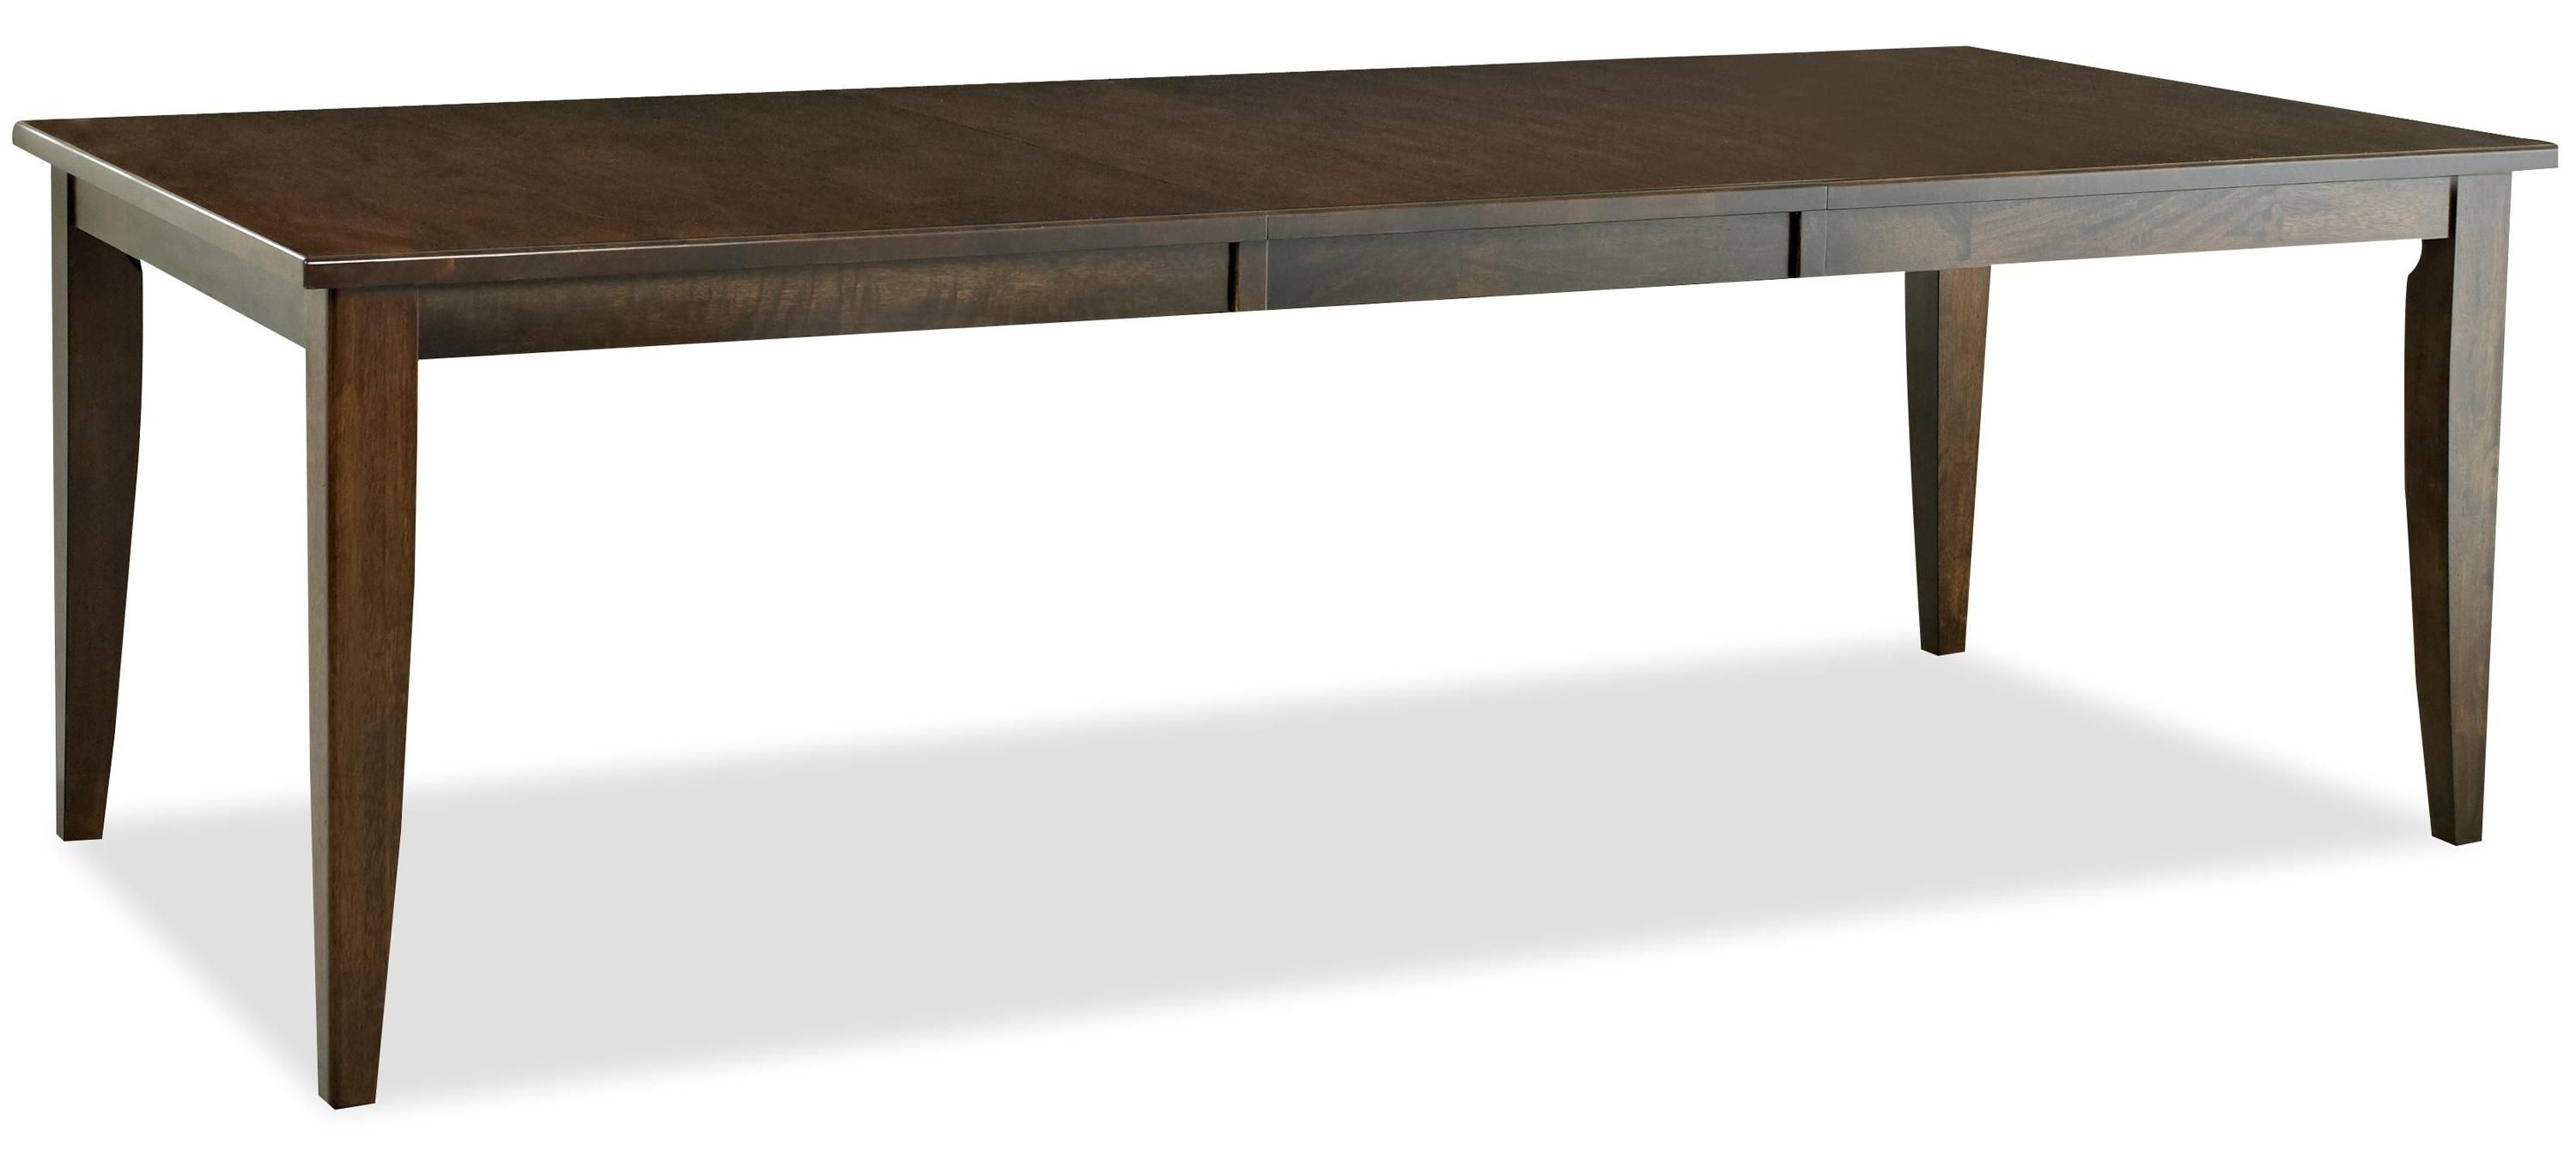 Carturra Dining Room Table by Klaussner